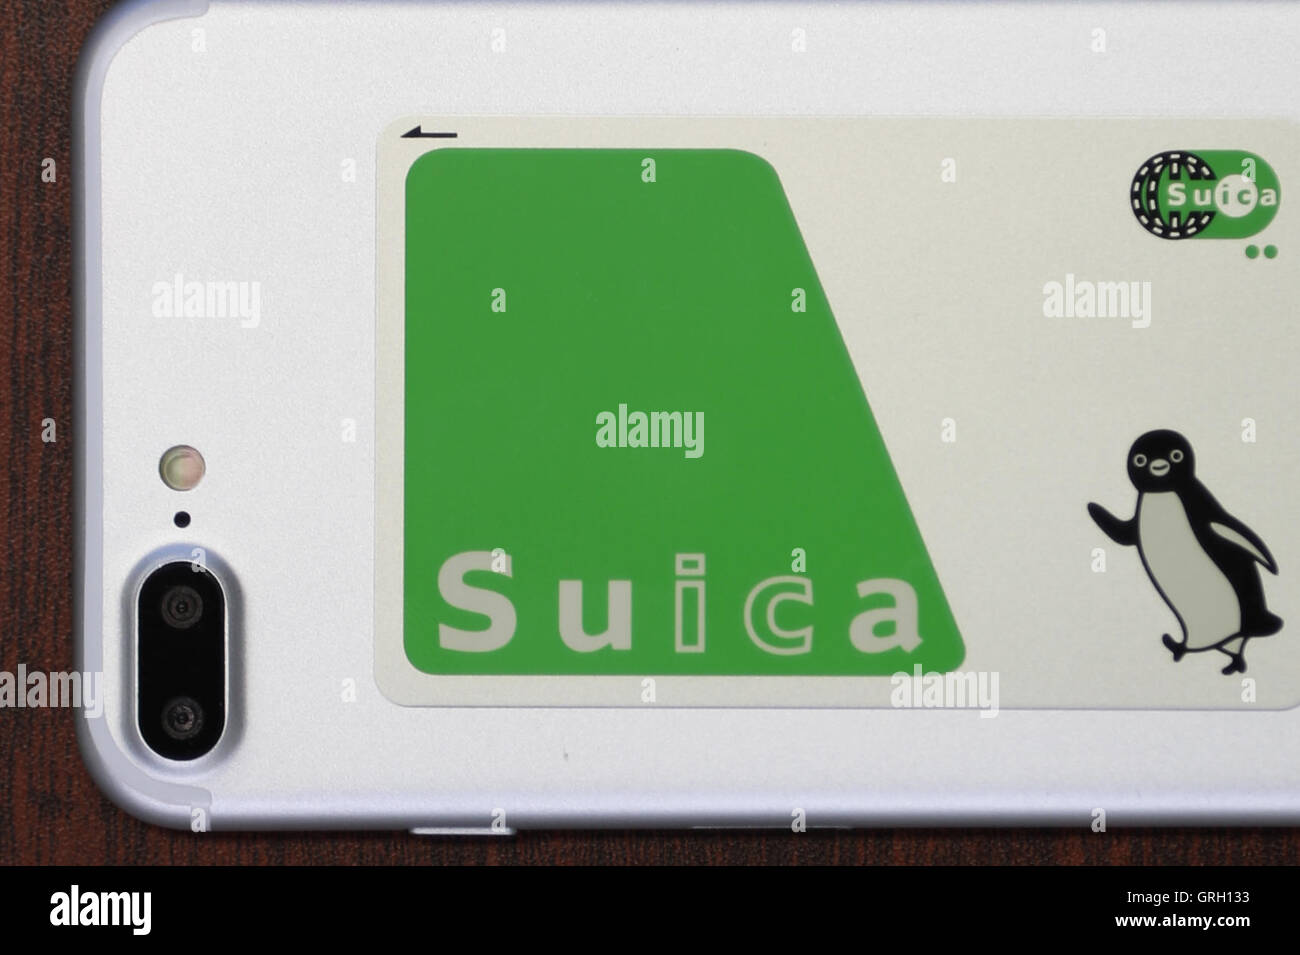 A Suica Travel Card On Top Of A Mock Up Of The New Iphone 7 Plus On